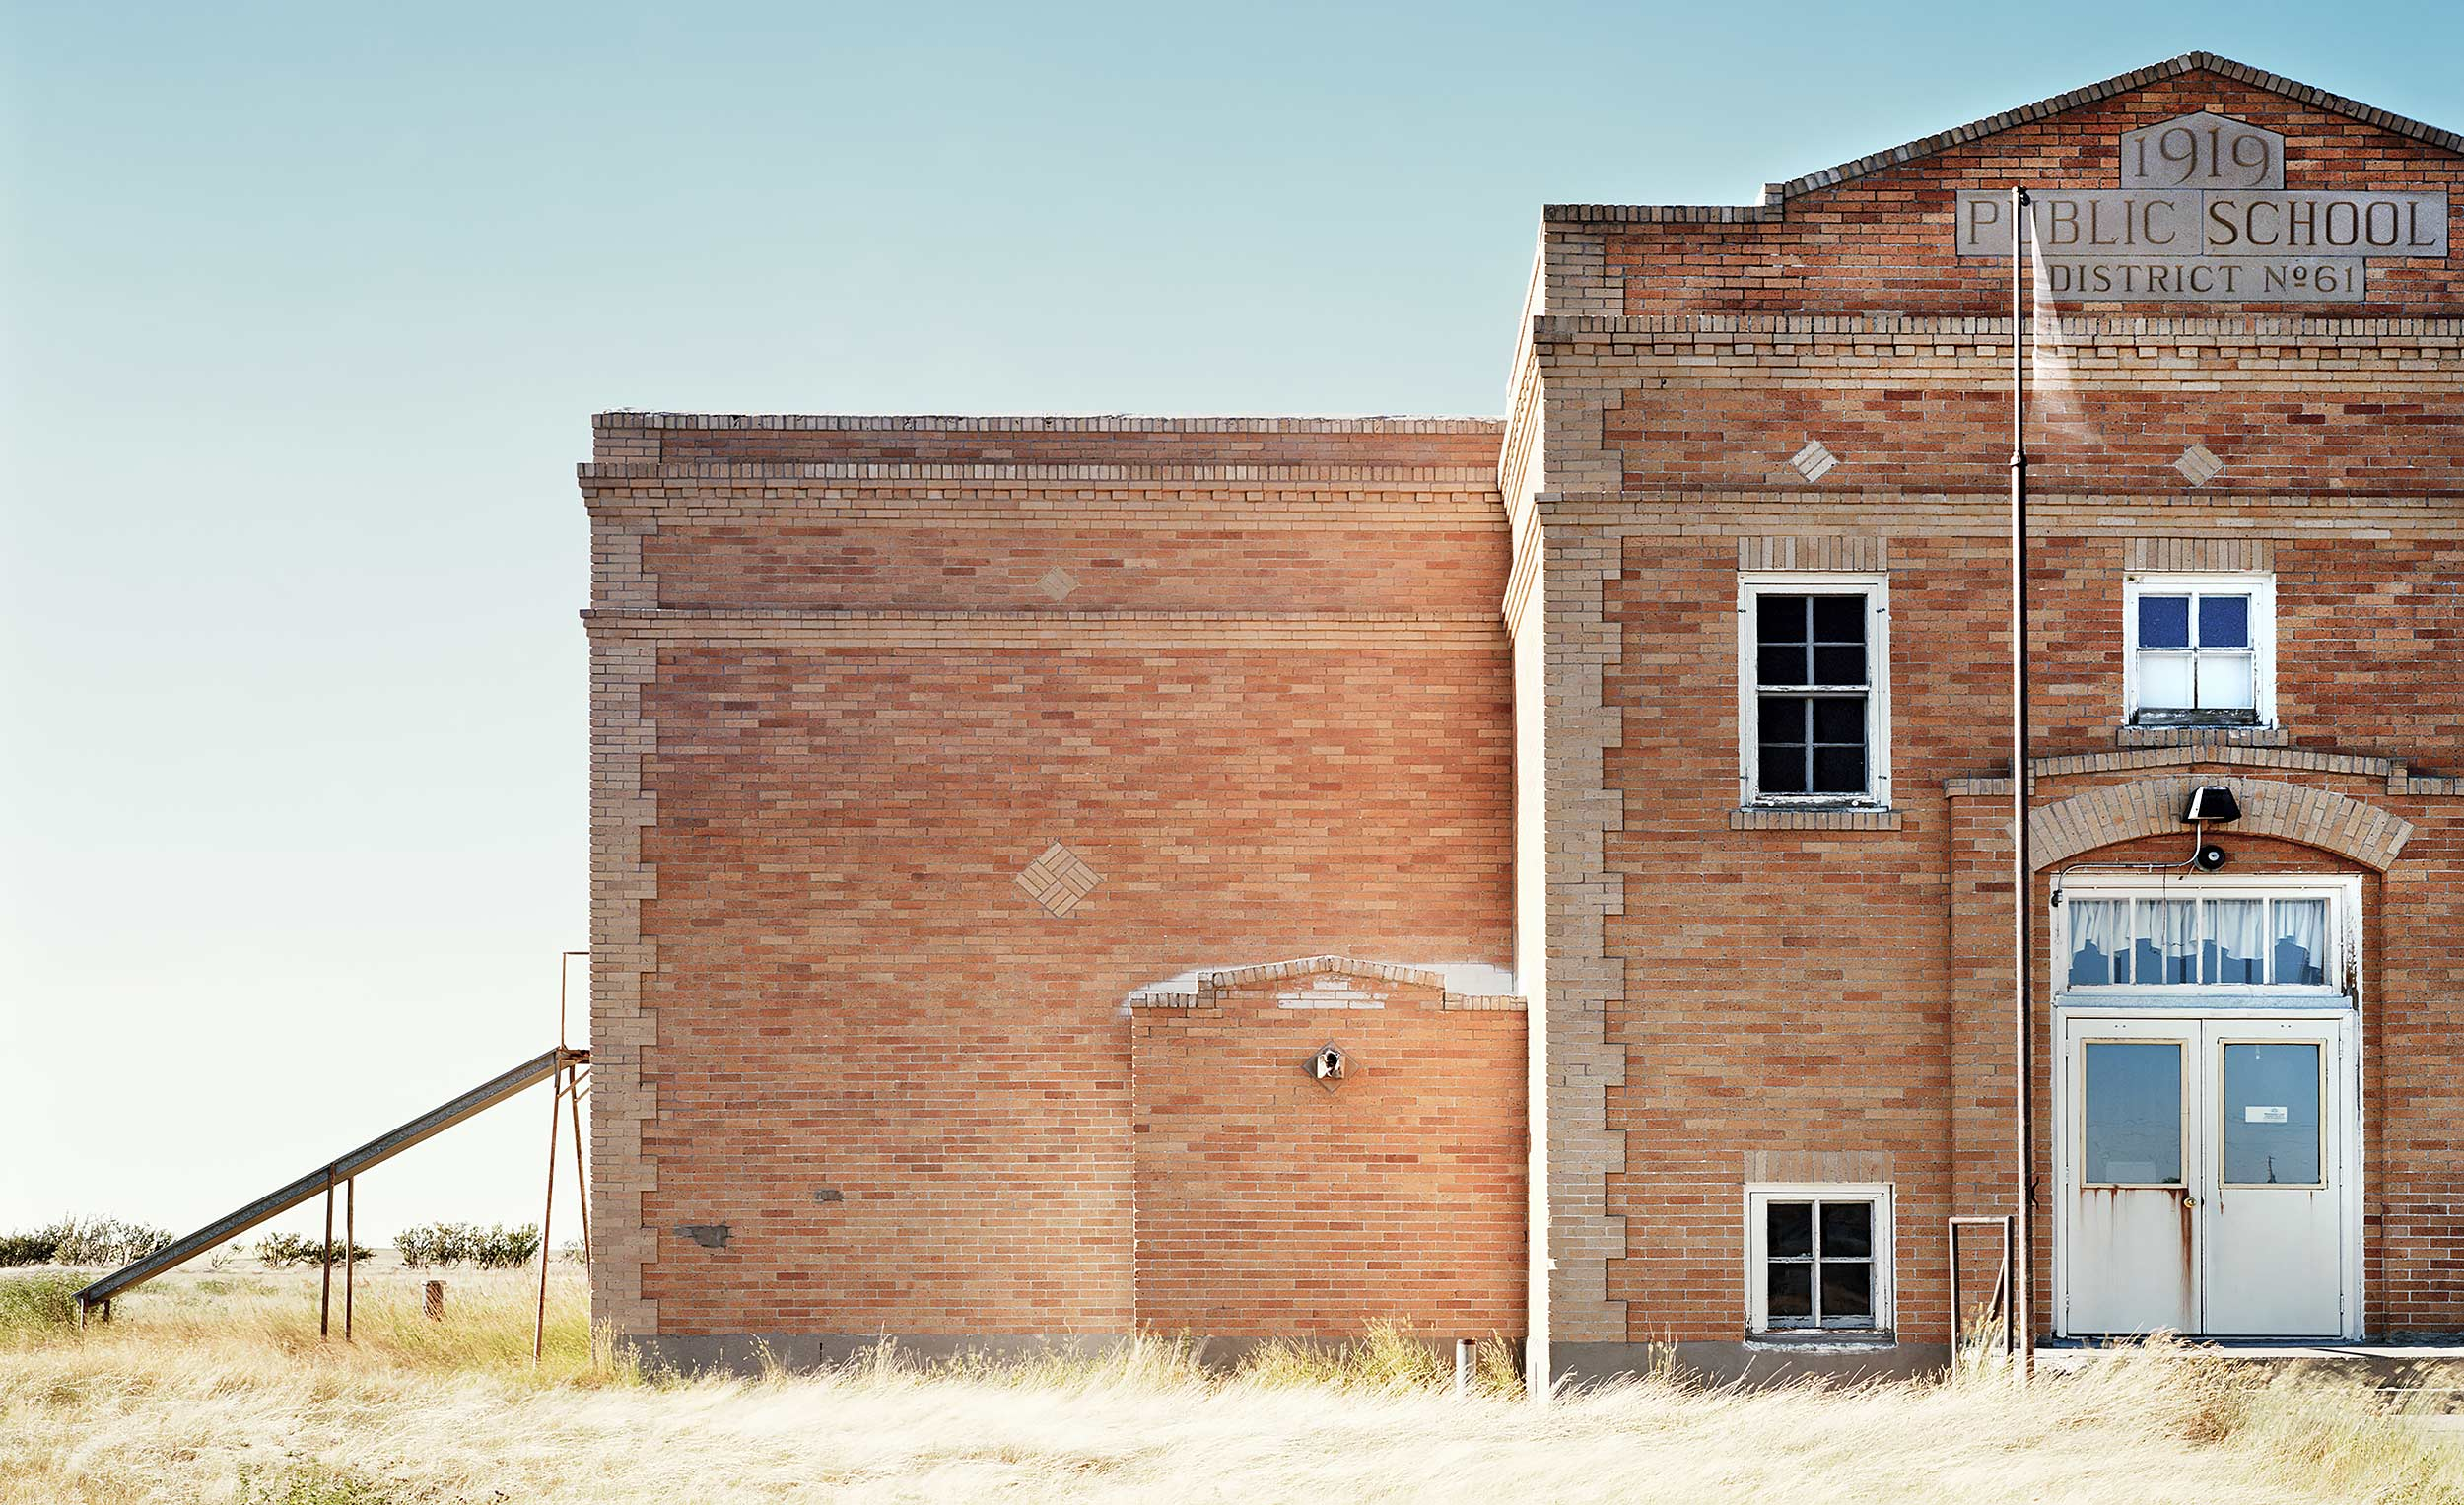 Old brick schoolhouse in Montana